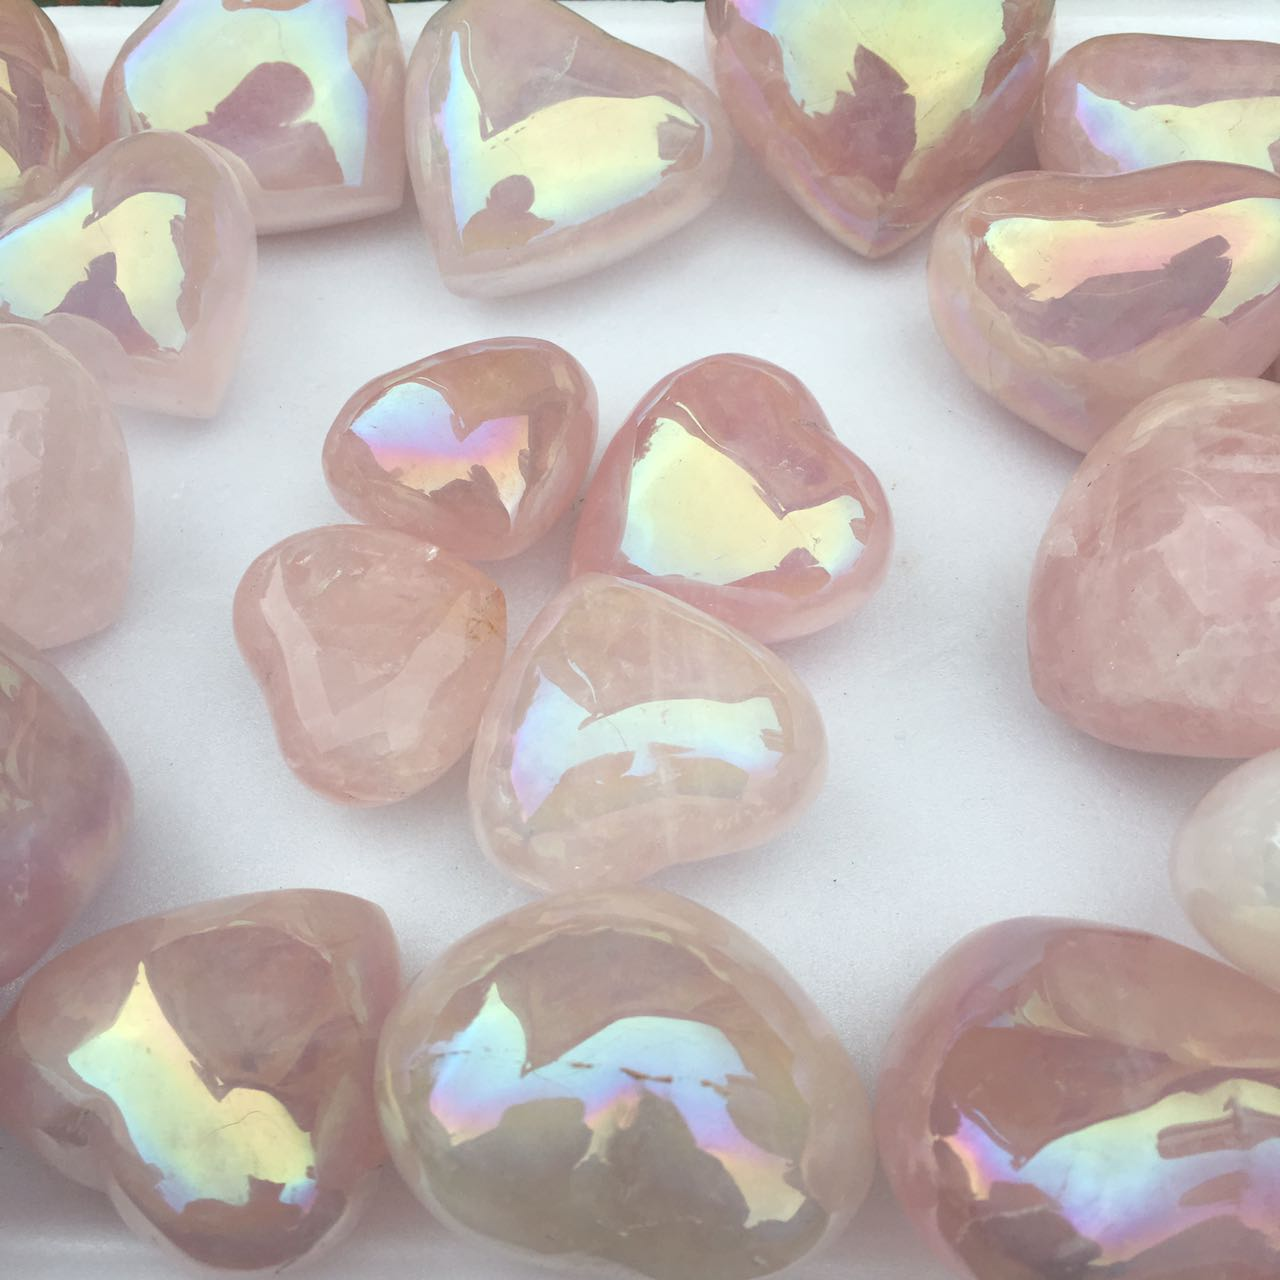 Stones from Uruguay - Polished Angel Aura Rose Quartz Crystal Heart